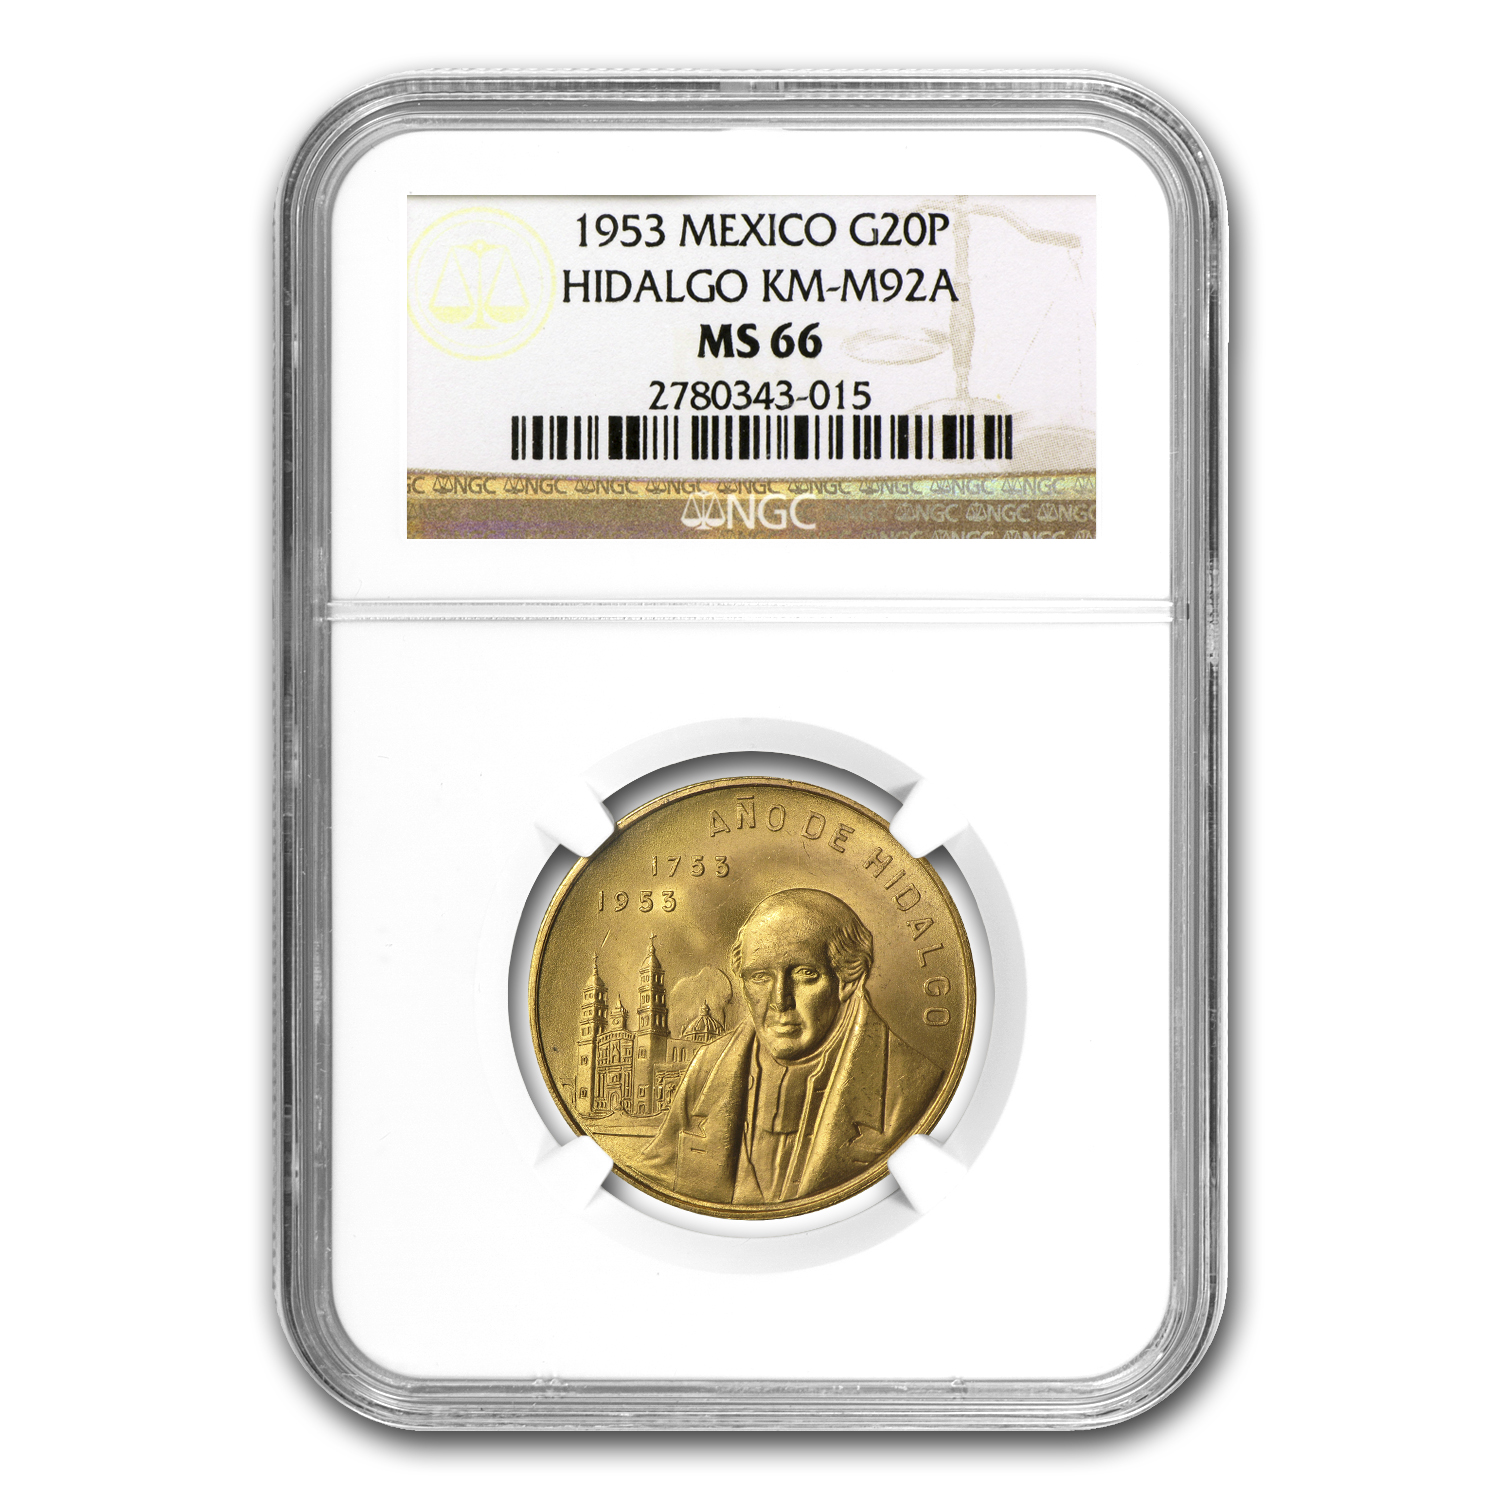 1953 Mexico Year of Hidalgo Gold Medal MS-66 NGC